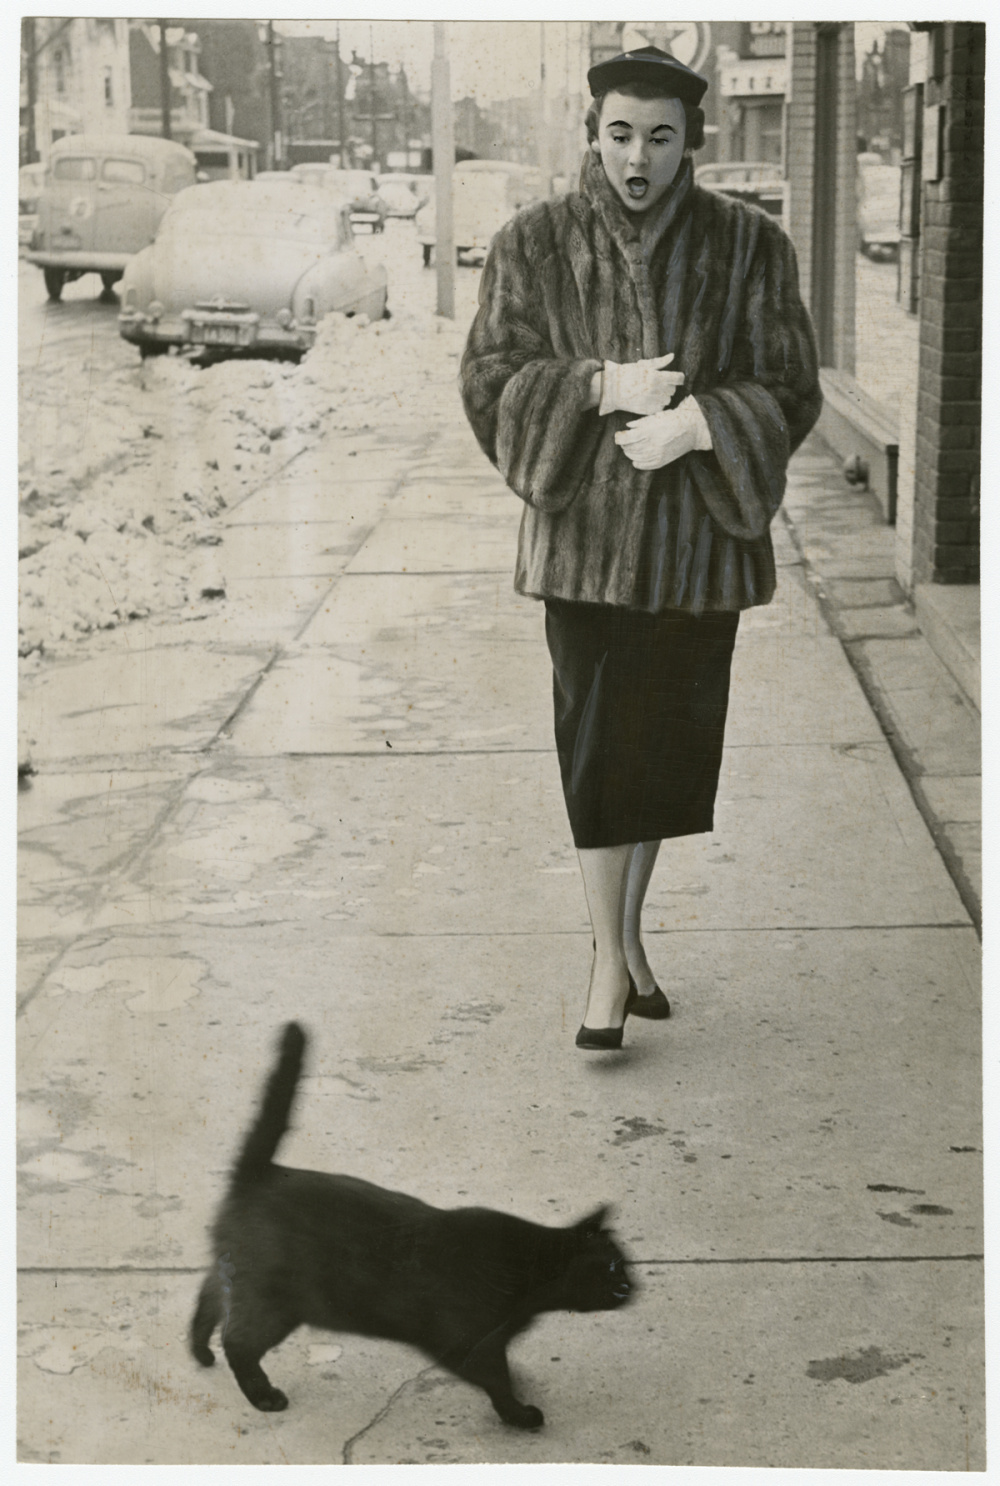 Unidentified photographer, To have a black cat cross your path at any time is unfortunate, but on Friday the 13th – oh, my! – which is just what Jean Craig said, 1953. Gelatin silver print, 9 x 6